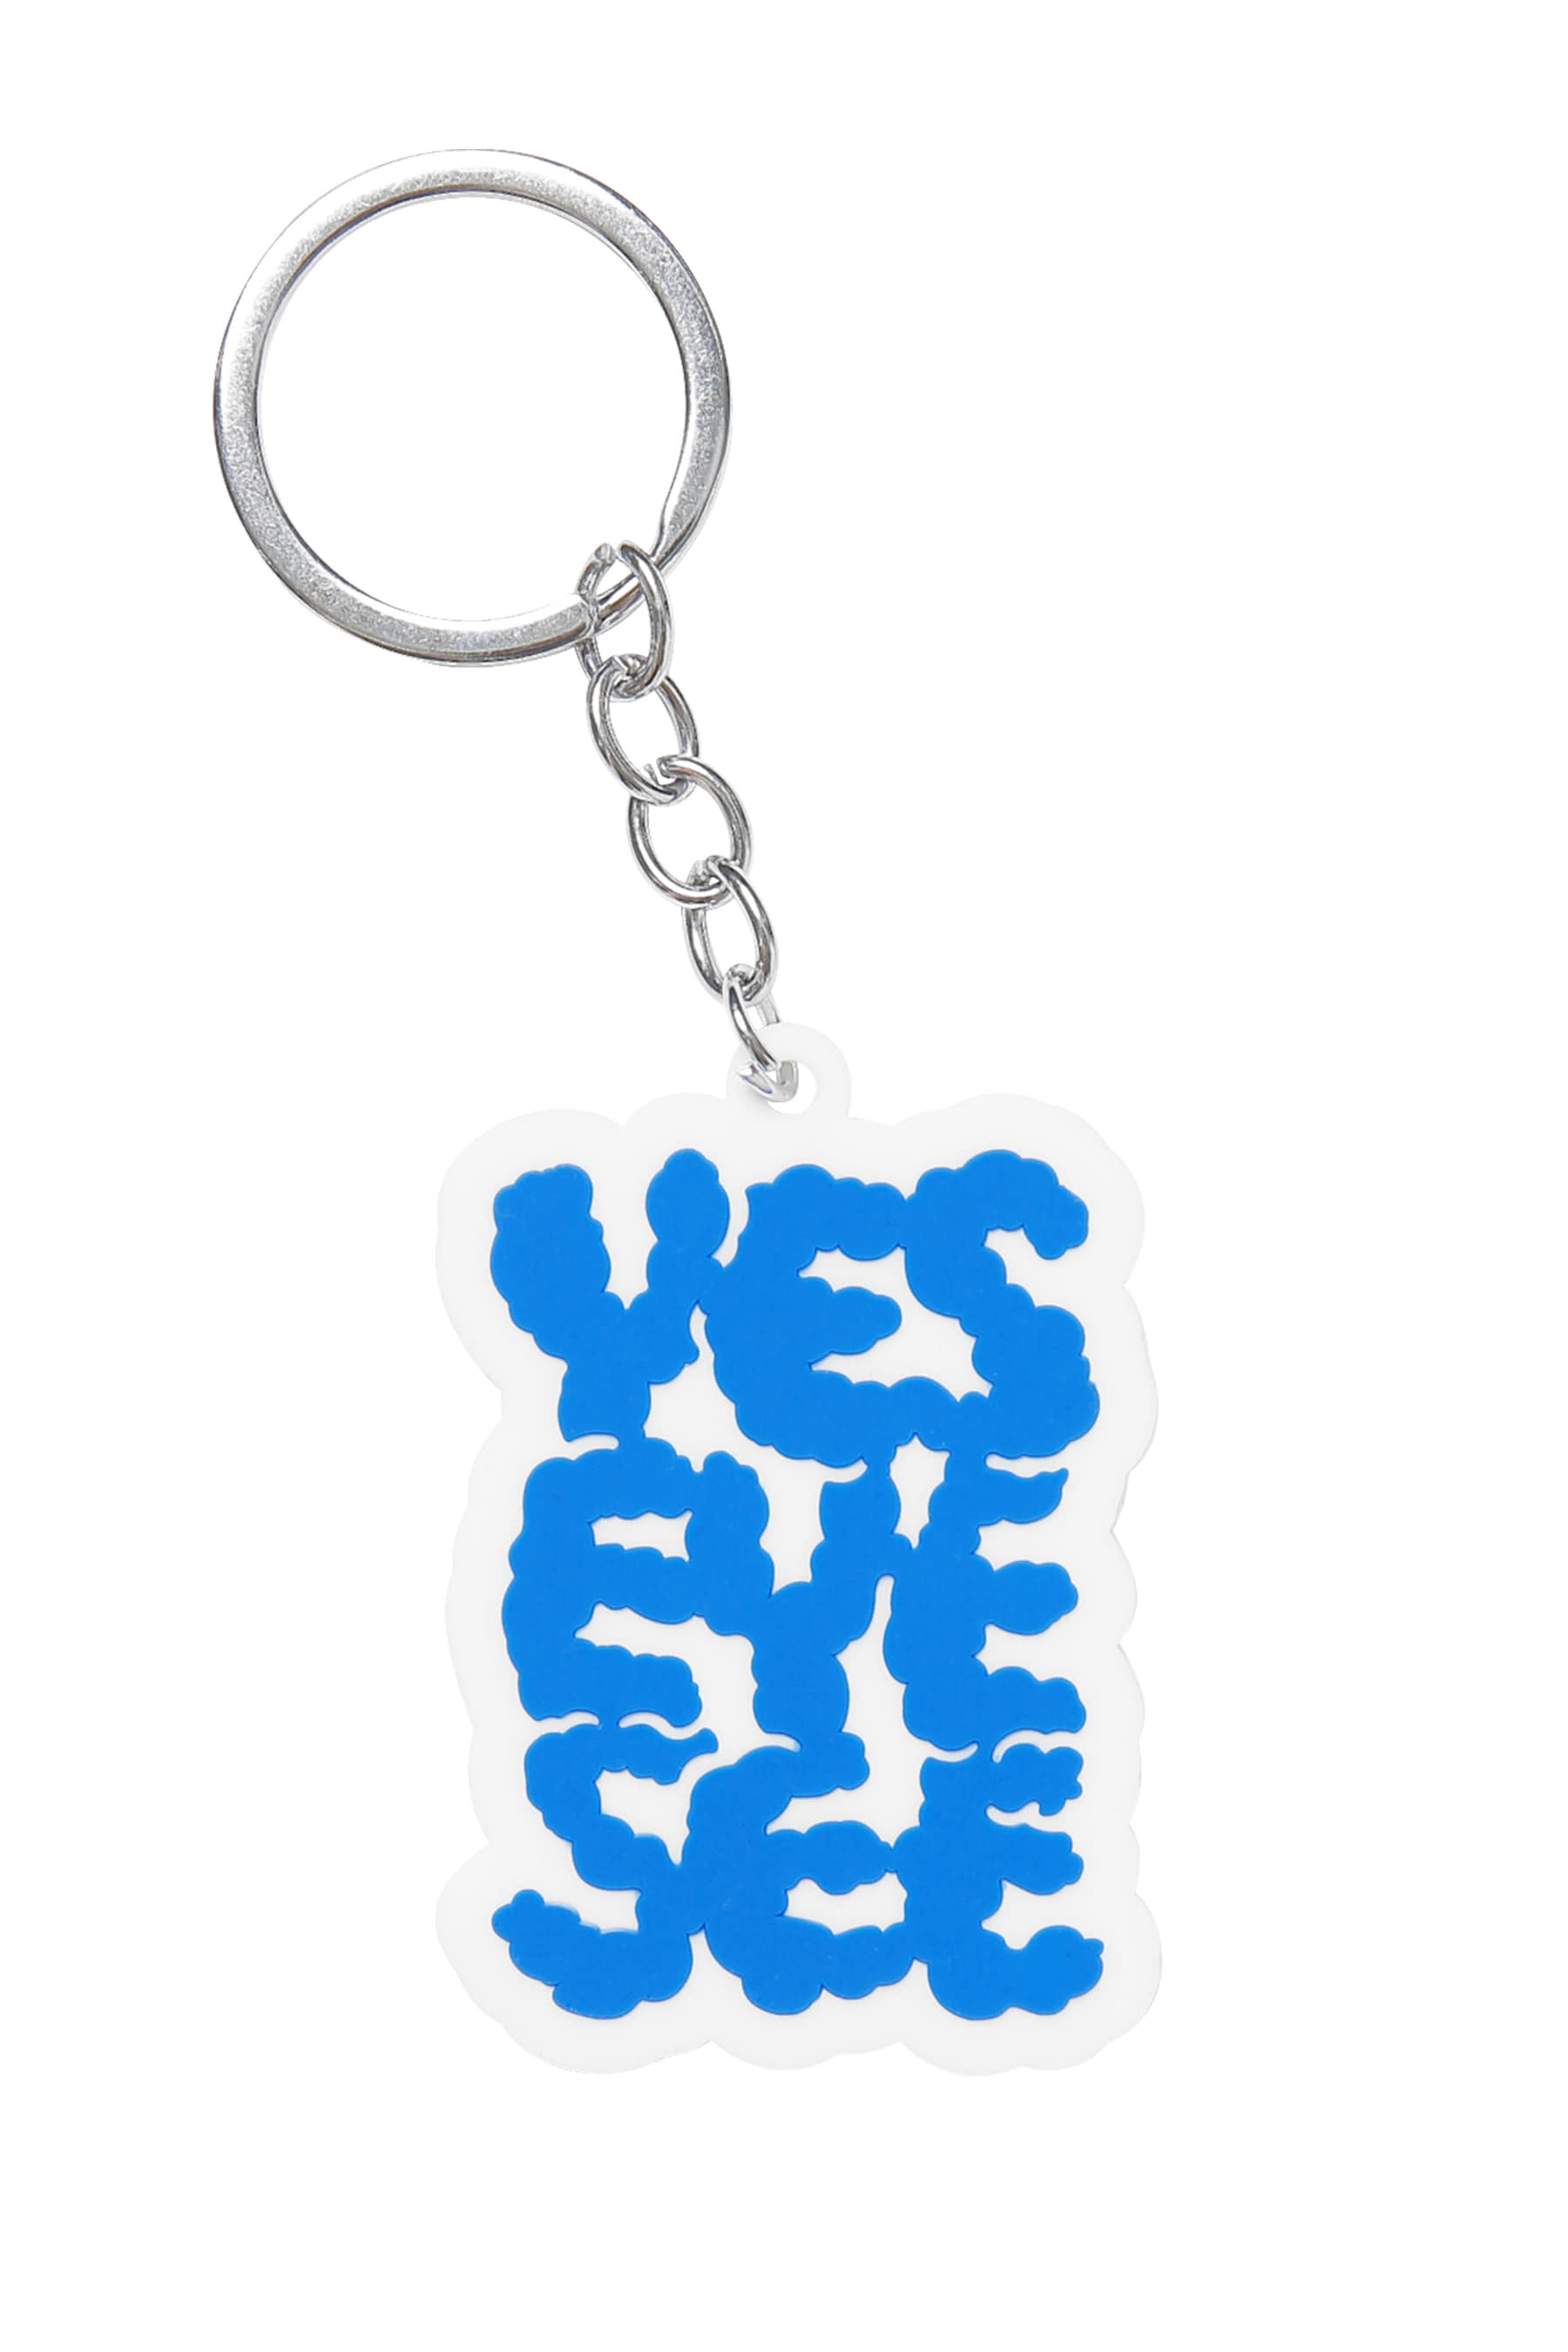 Y.E.S  Cloud keyring White